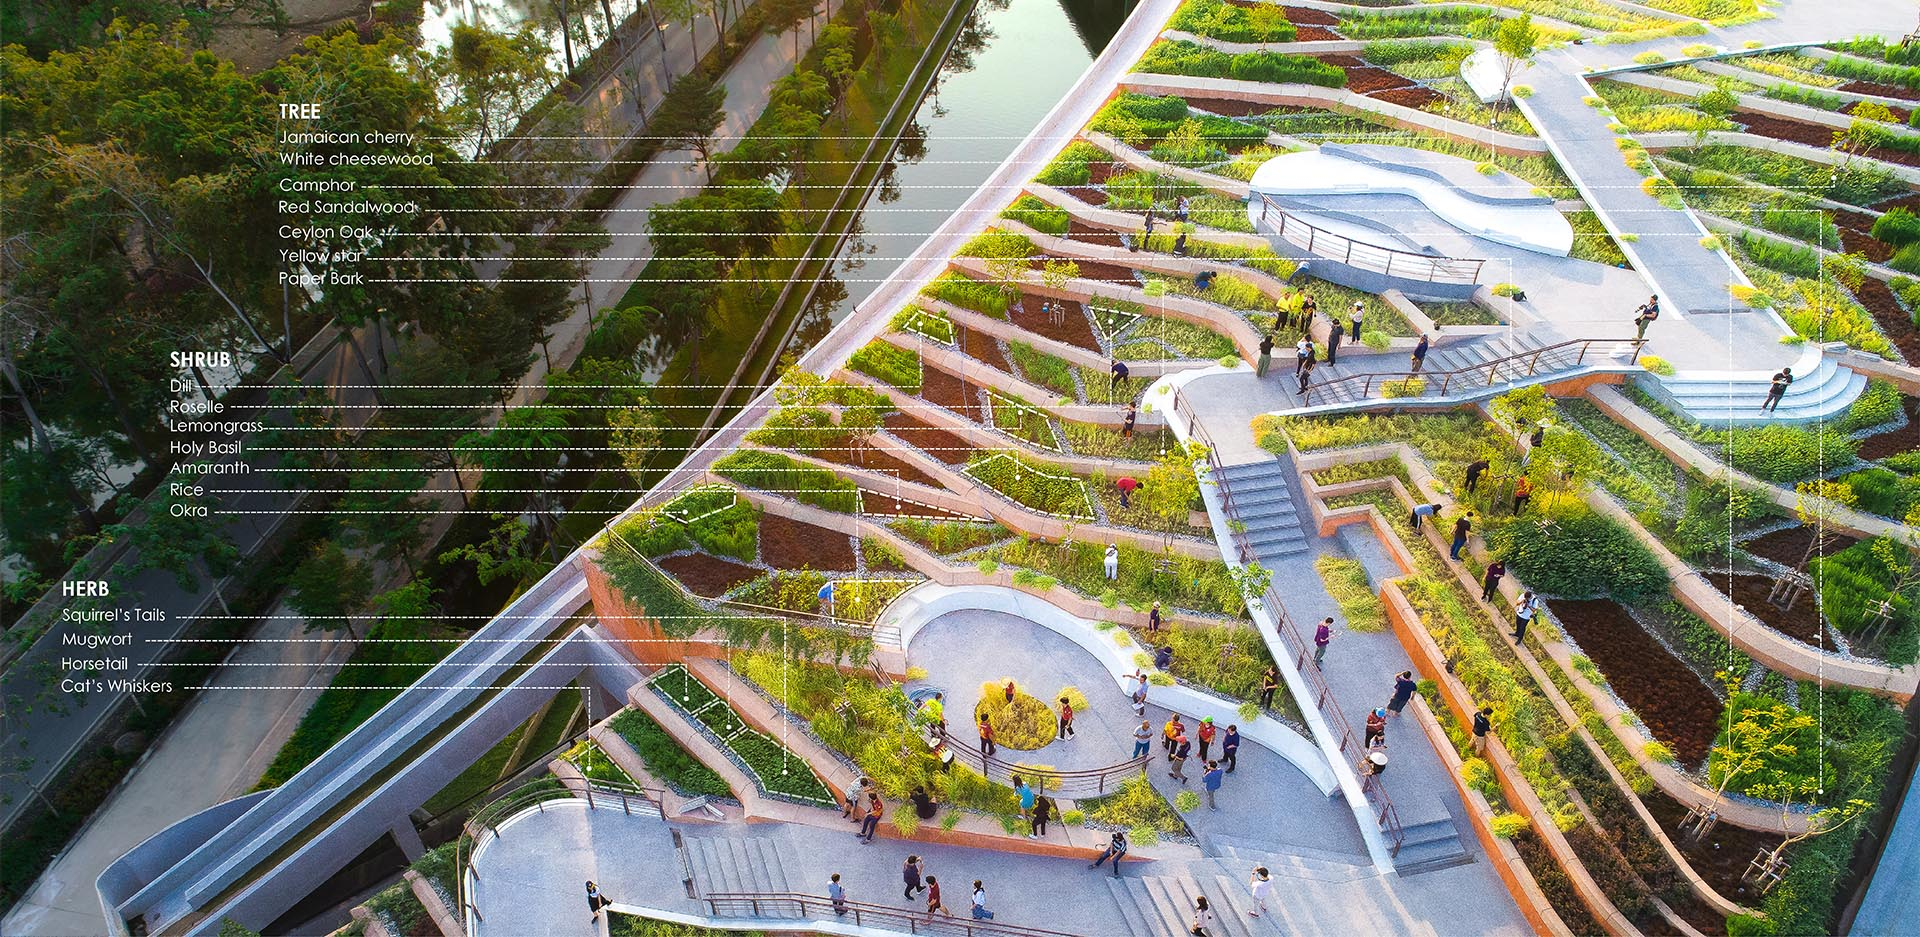 A terraced rooftop farm with herbs, shrubs, and trees, that grow food for students.